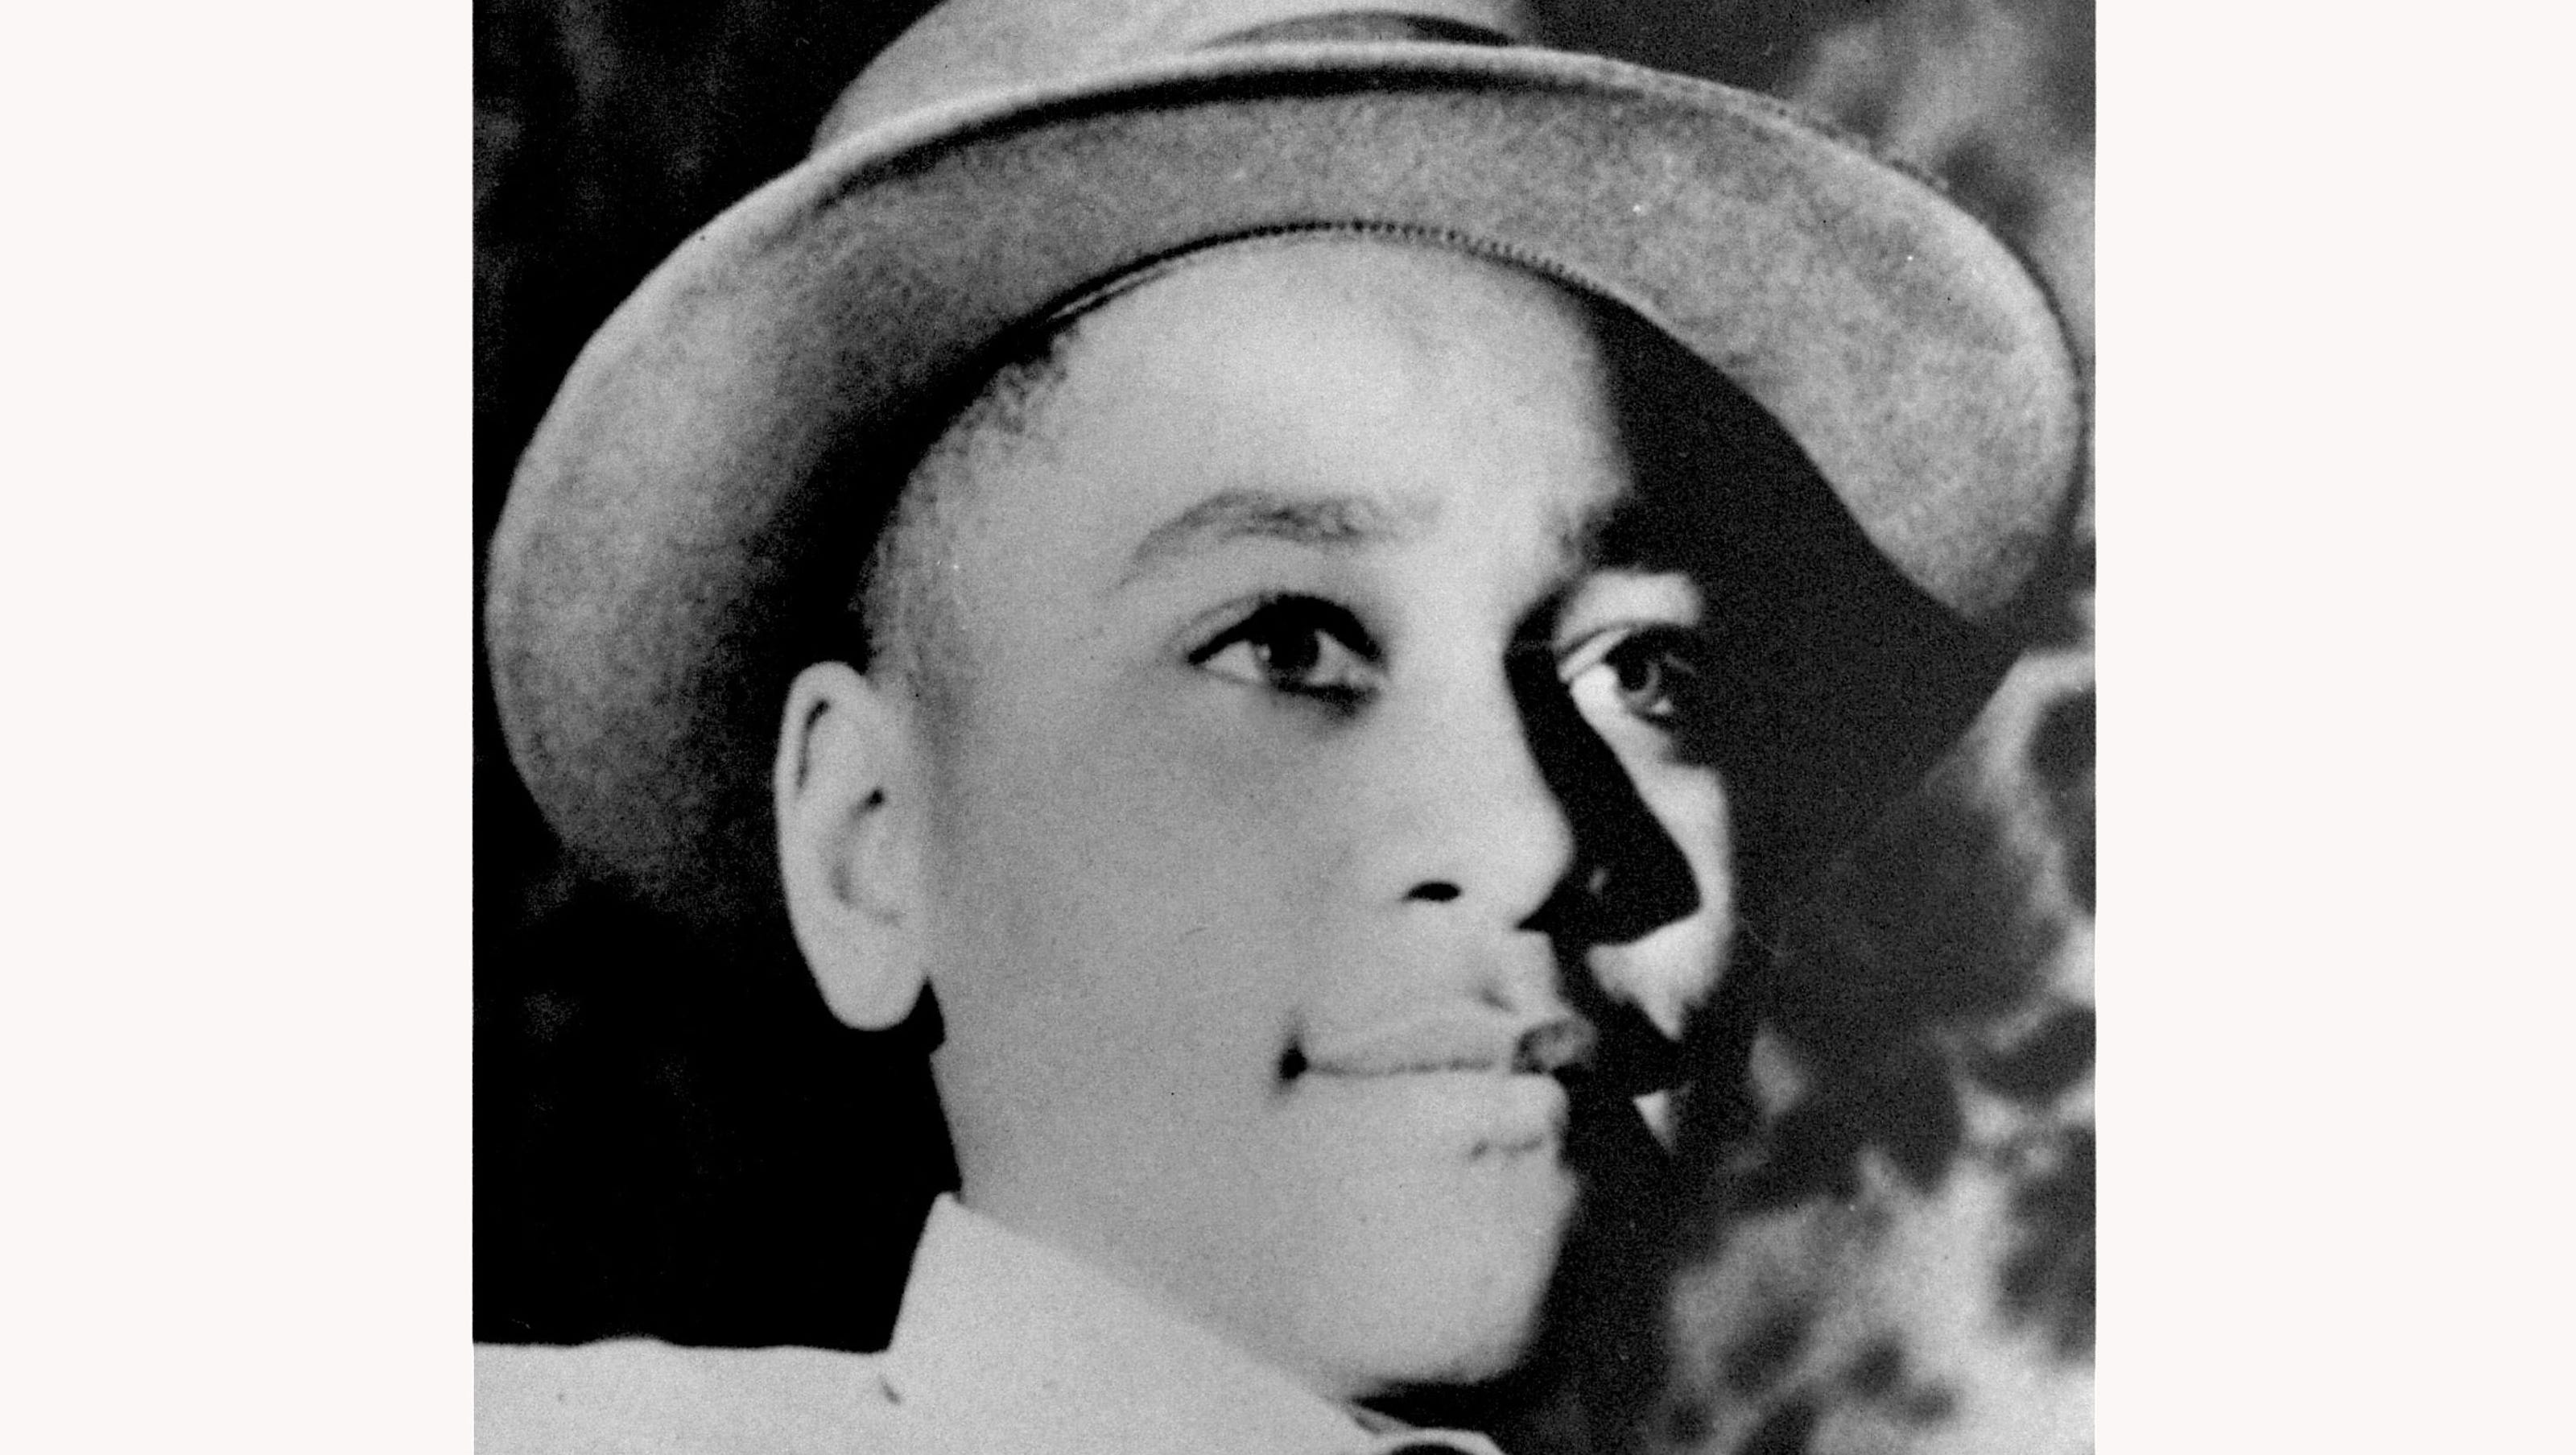 murder of emmett till essay Essay about emmett till a representation of emmett till's murder the kidnapping and horrific lynching of emmett till, a 14 year old african american boy, and the exoneration of his white murderers sparked an outrage across america.